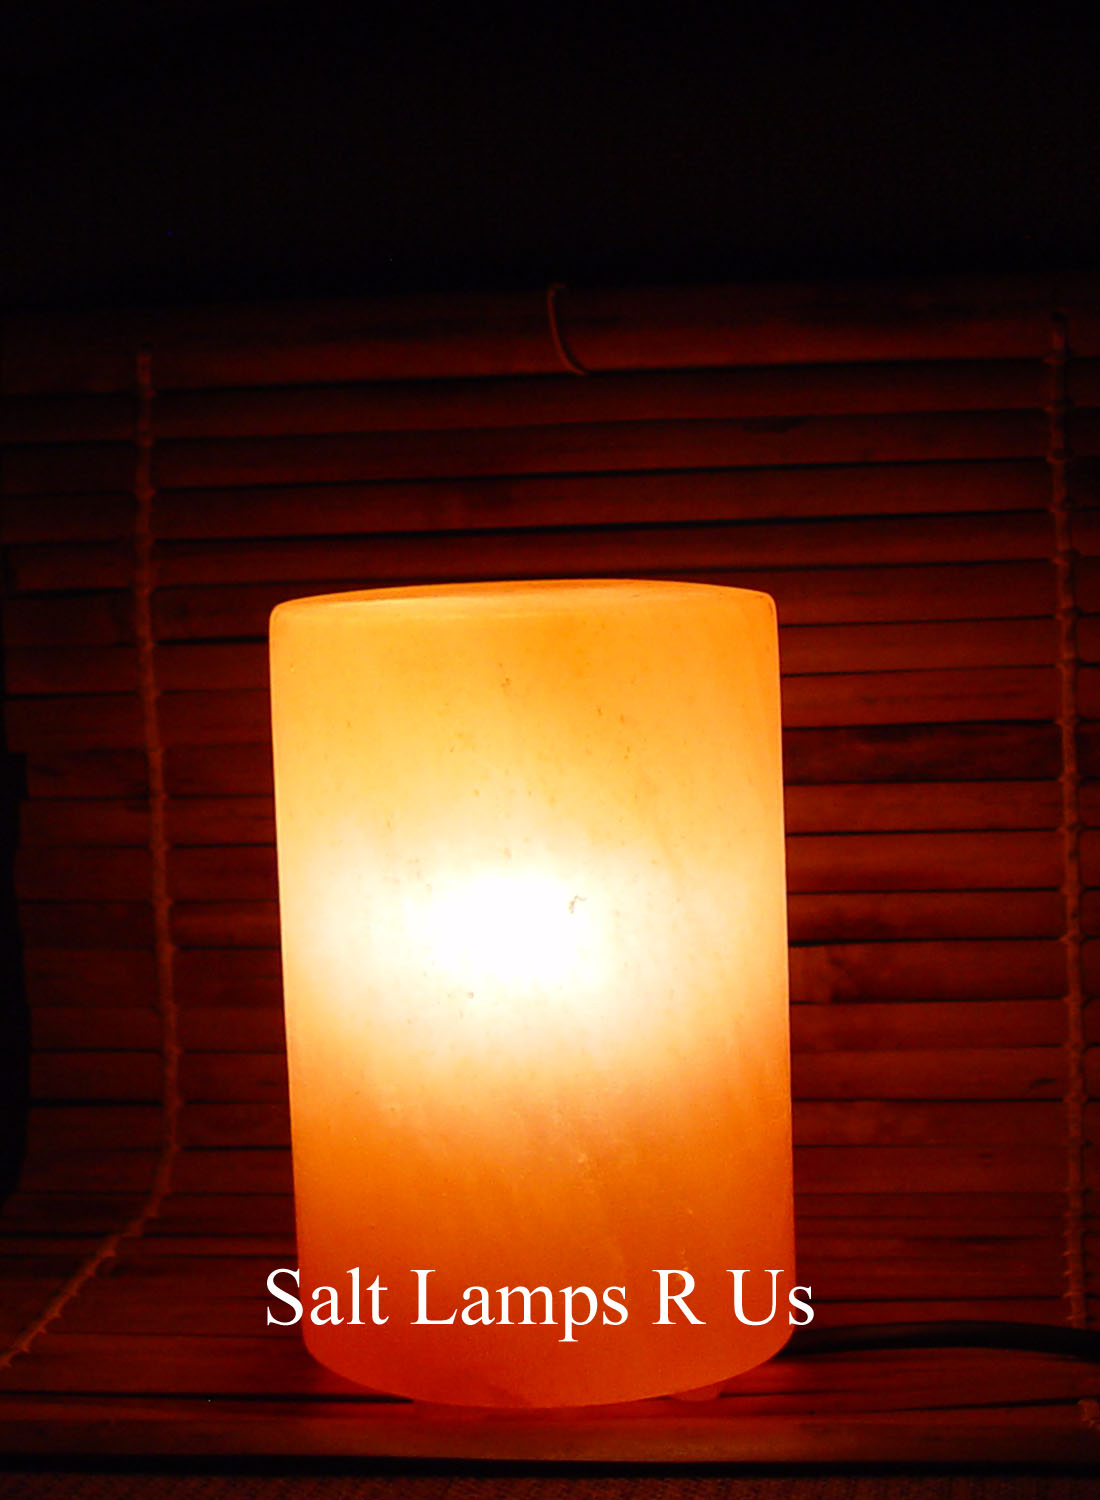 Salt Lamp Cylinder Shape with Plastic Feet Saltlamps-R-Us